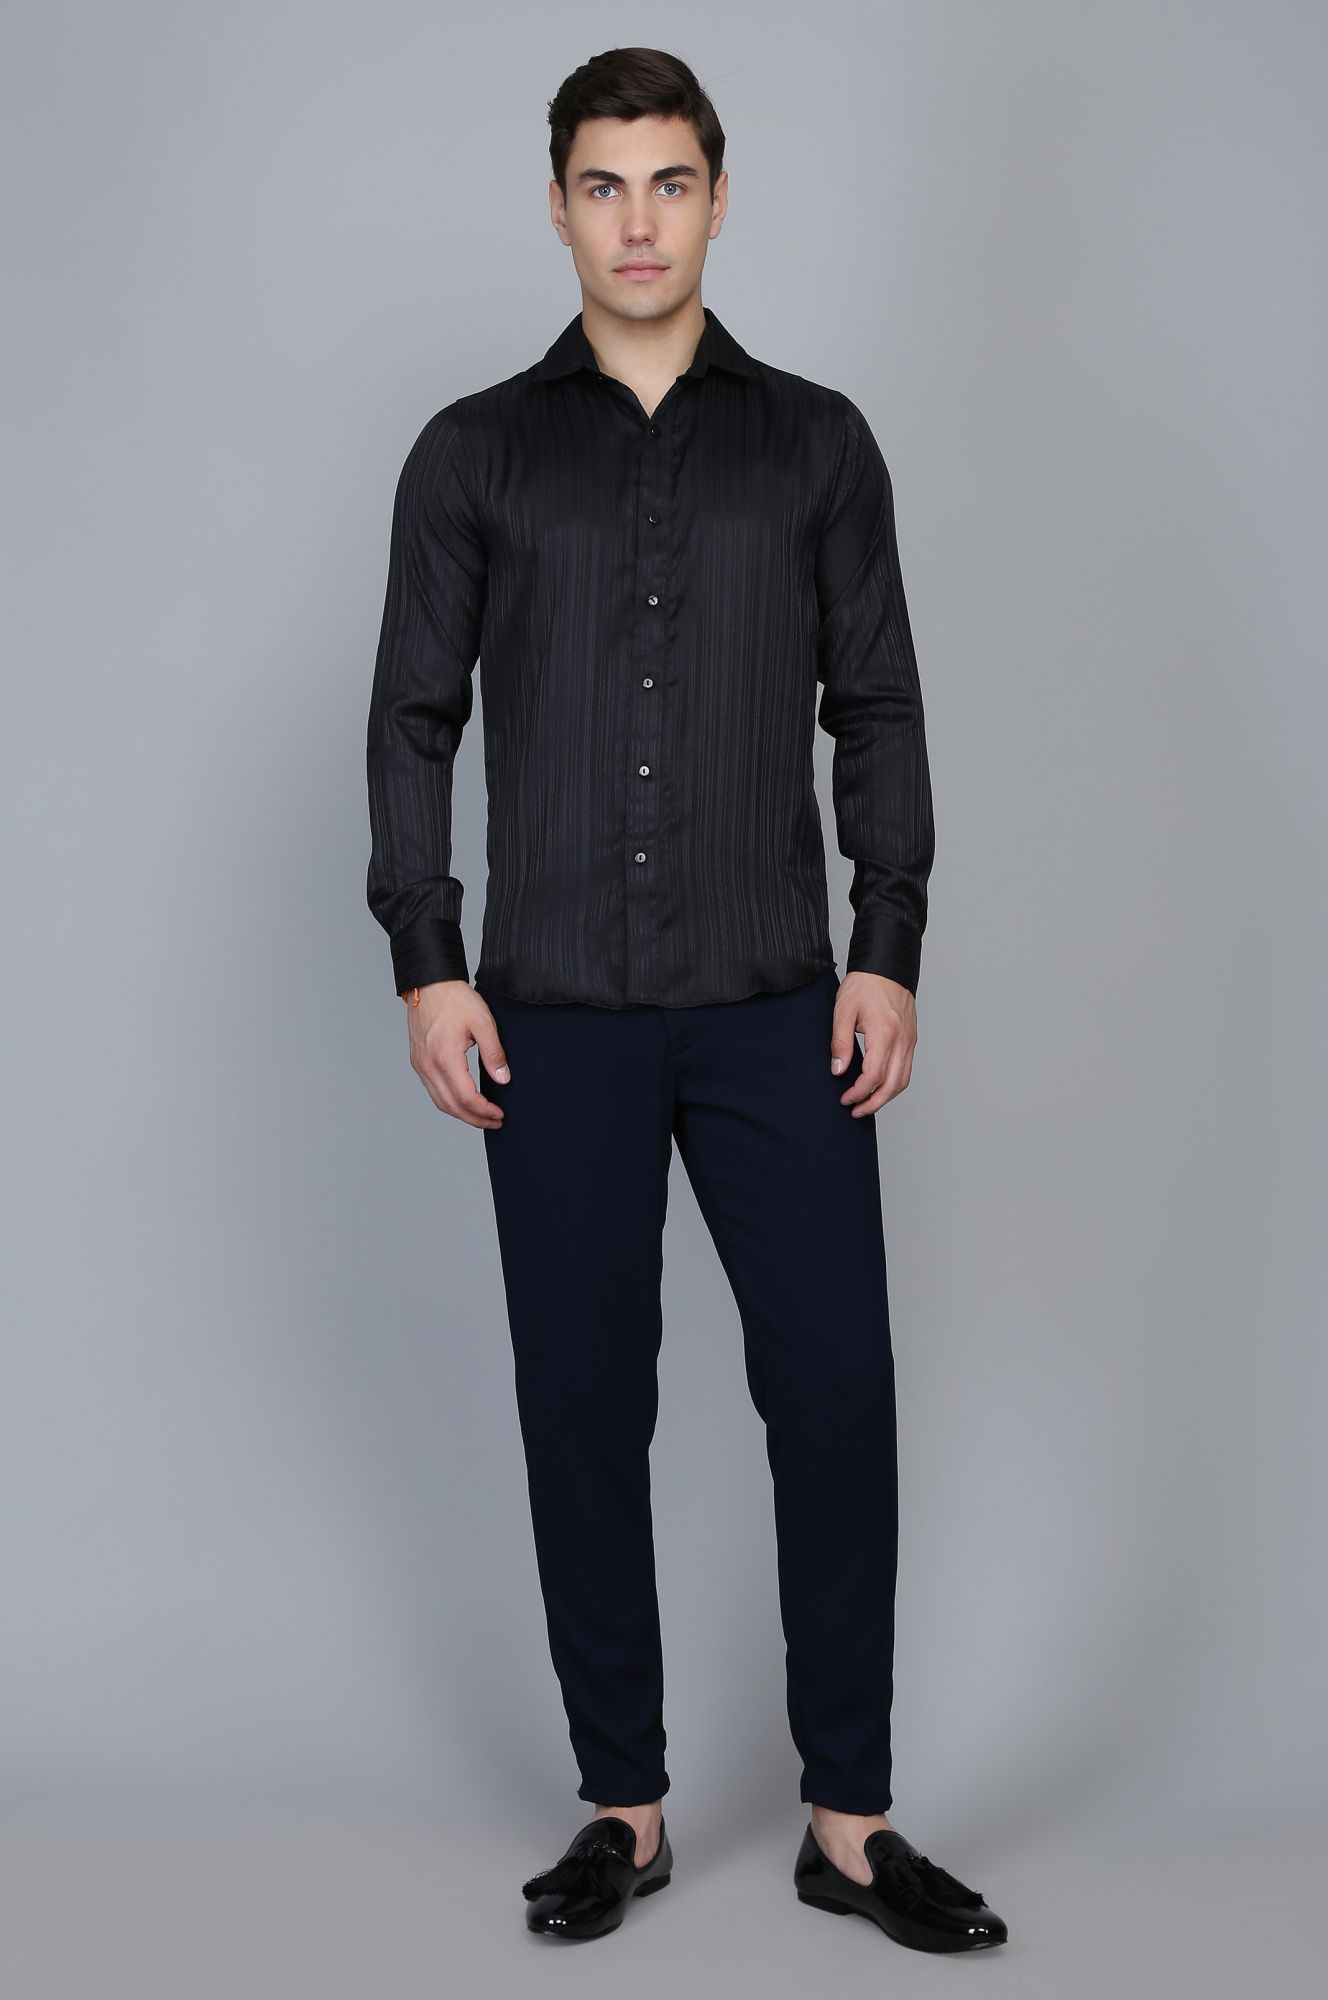 Formal Shirt in Black Self Stripes